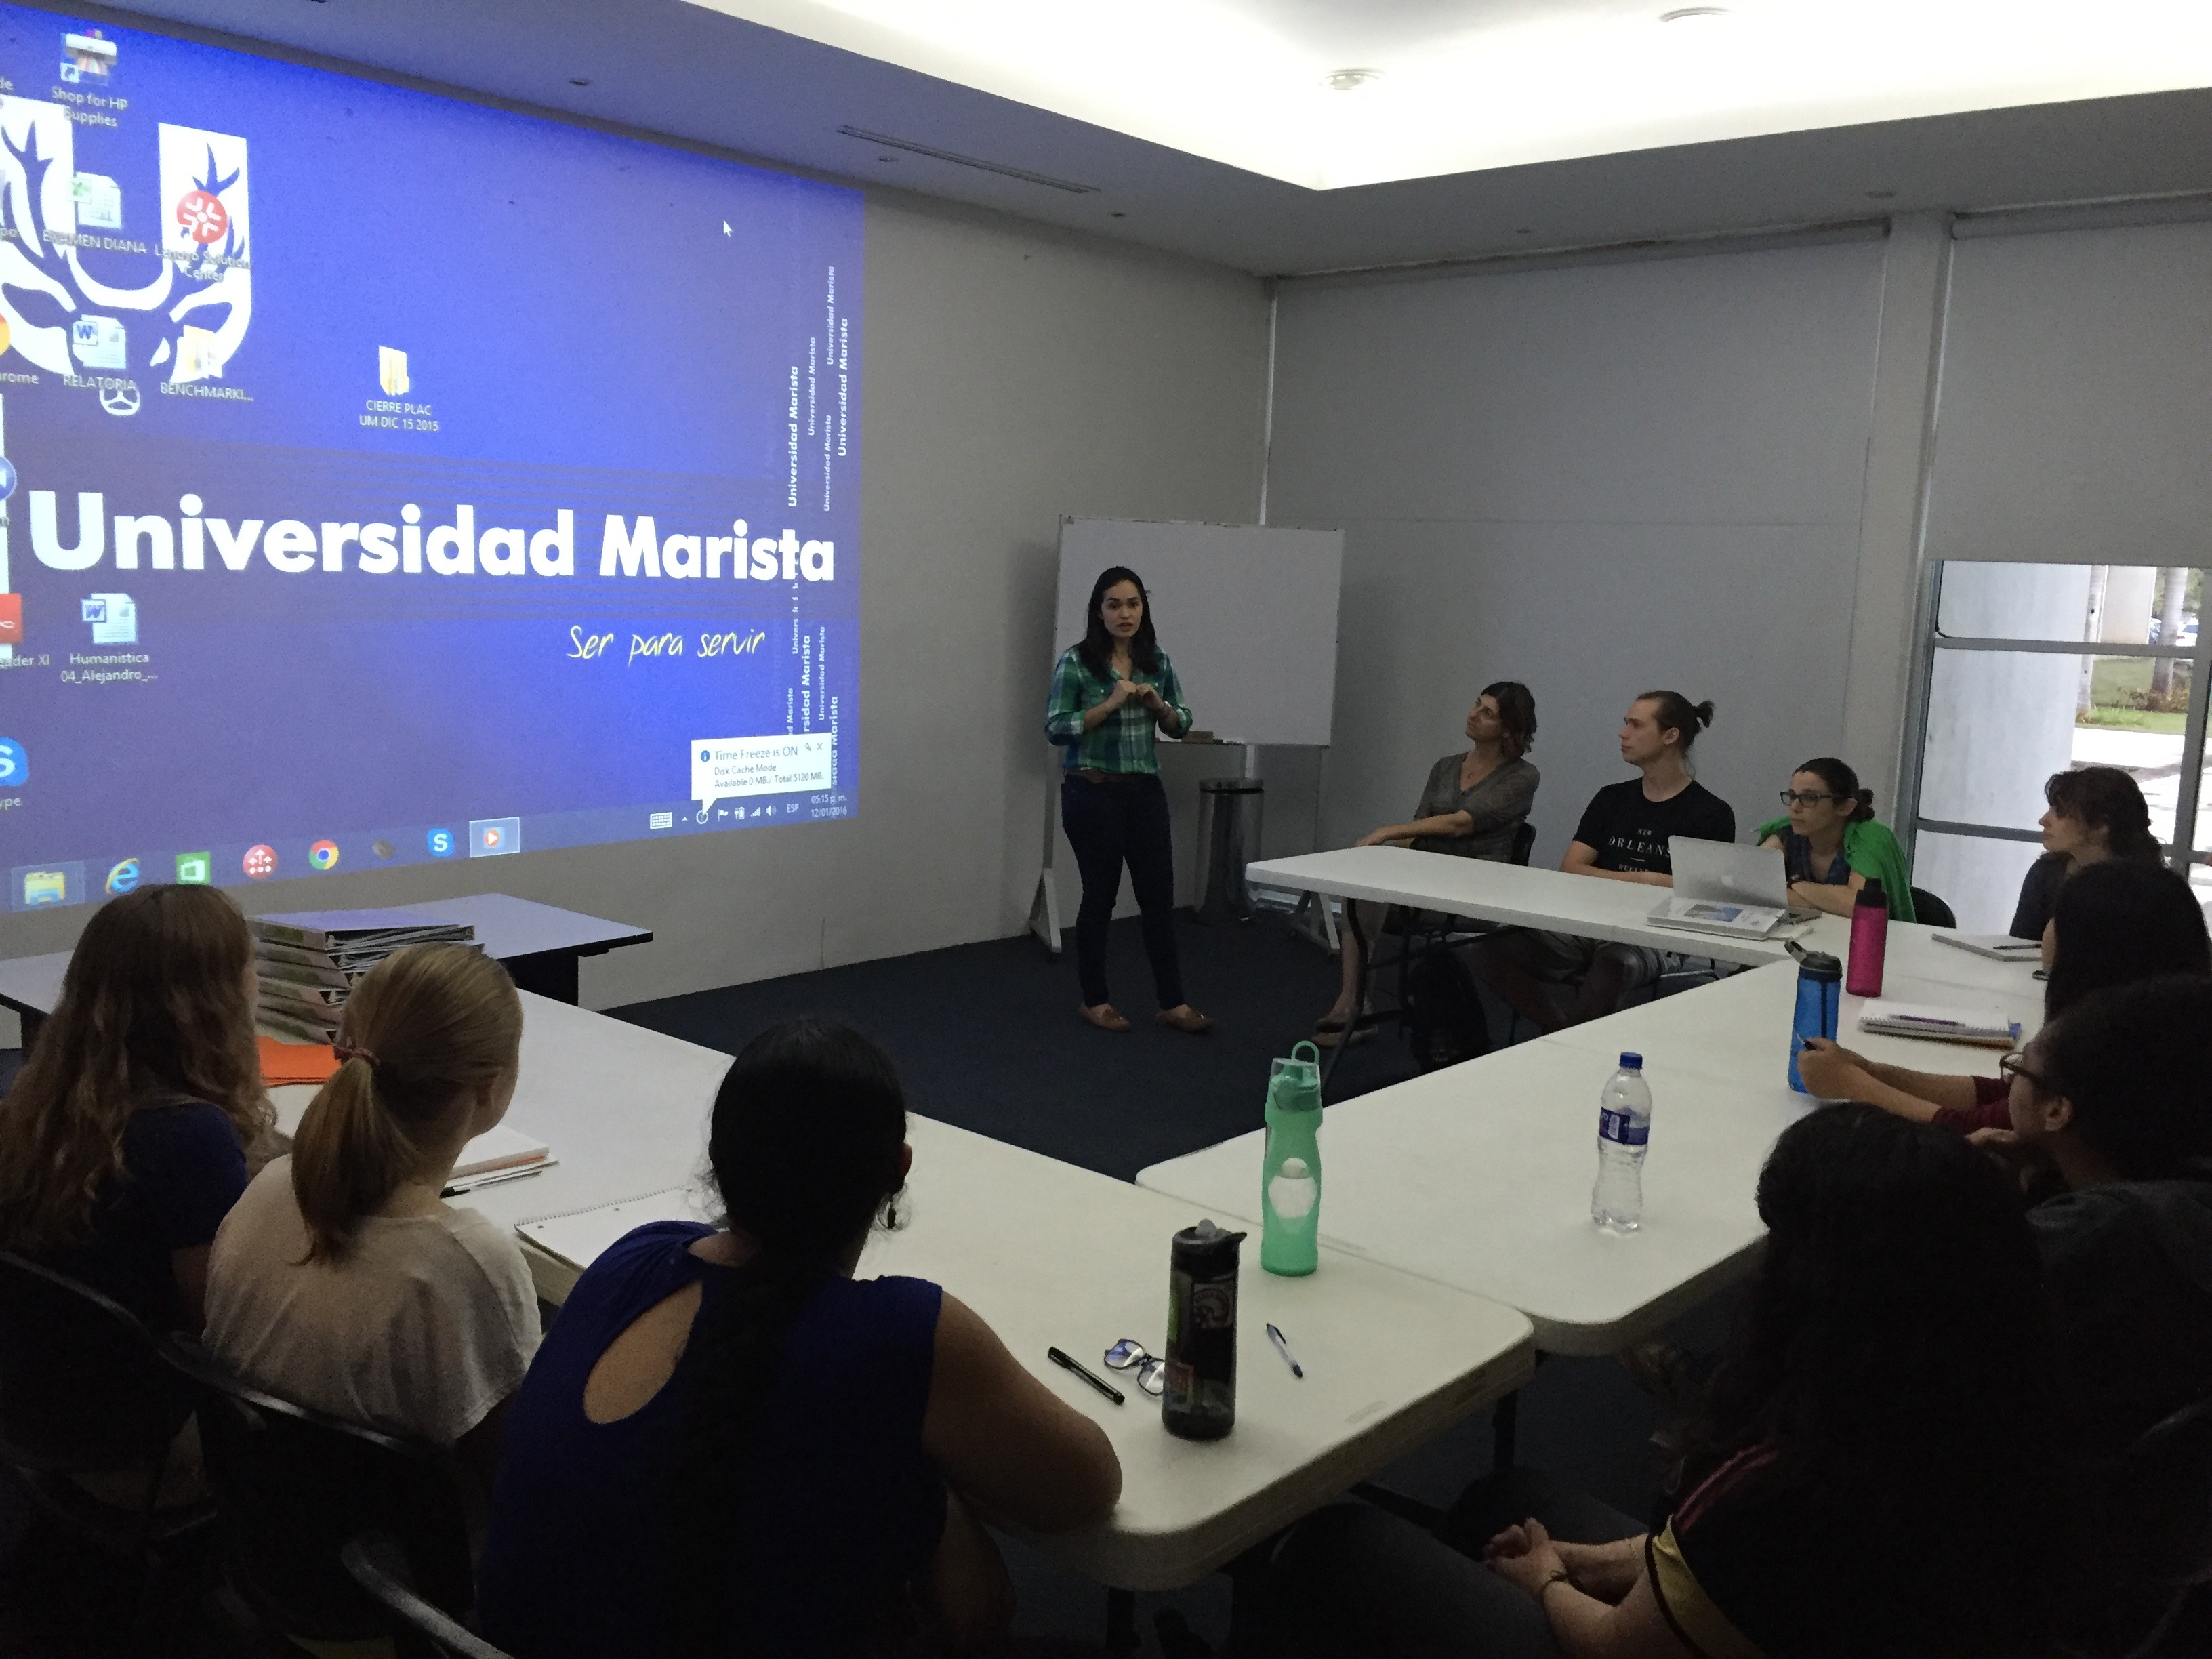 DePaul students study Critical Community Engagement at Universidad Marista